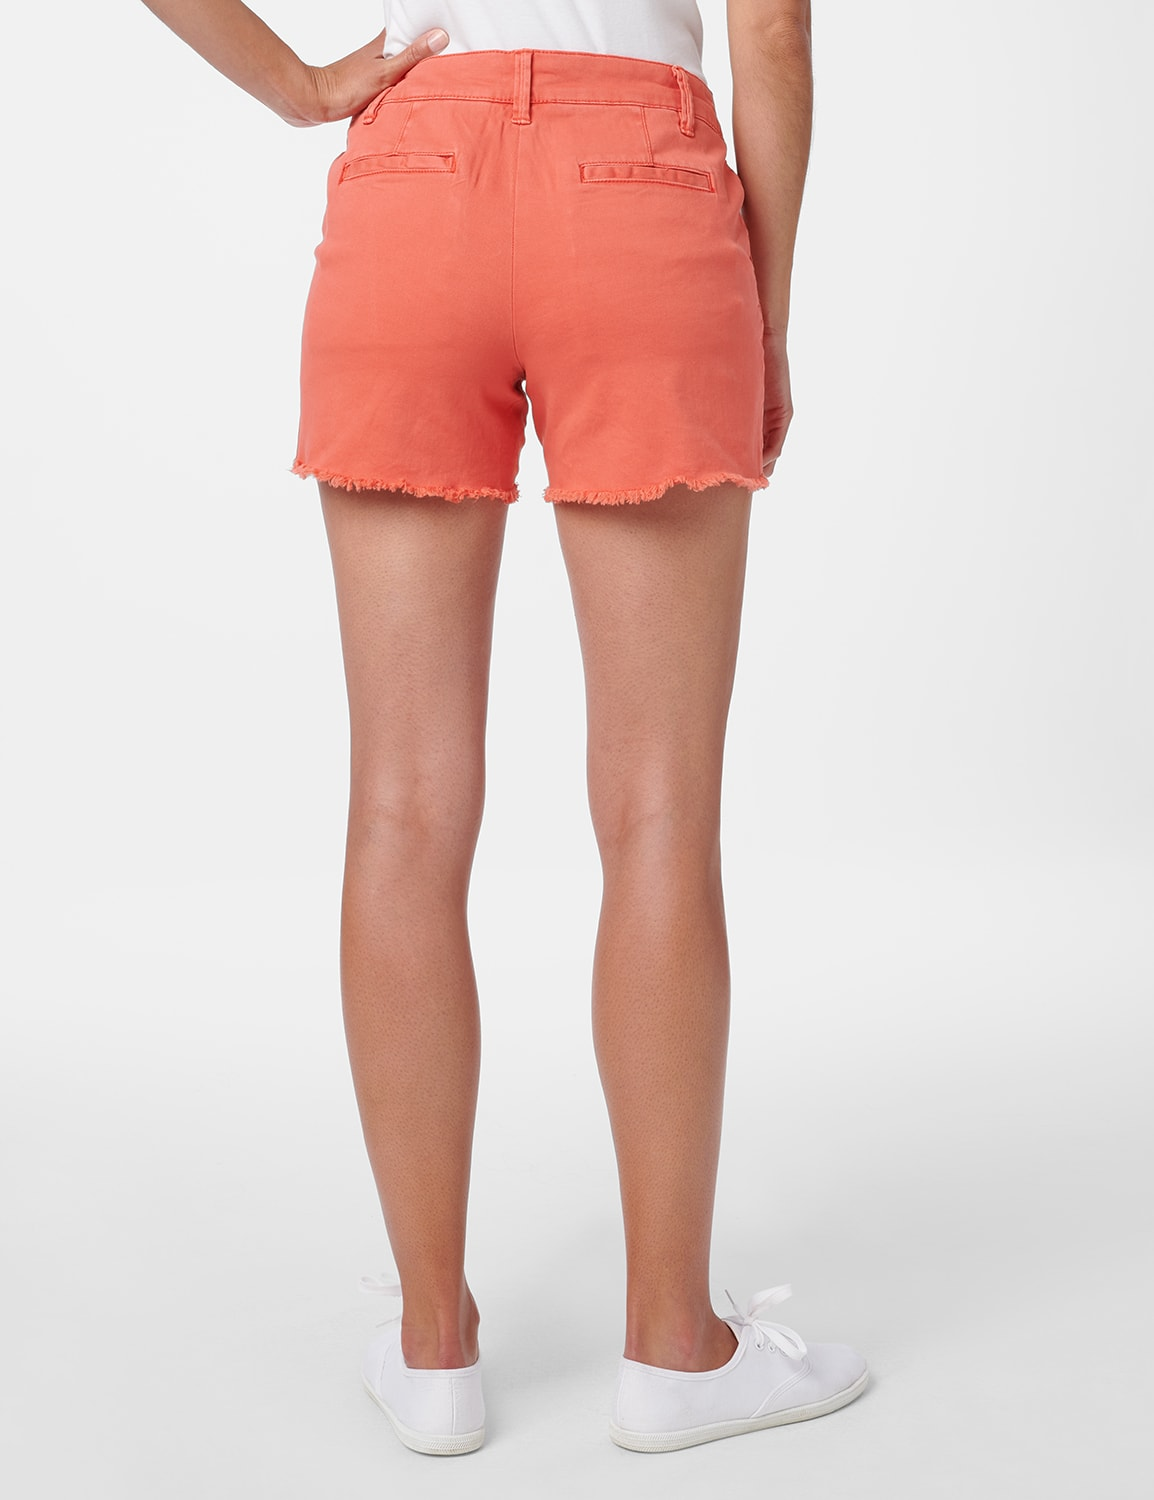 Fly Front Slash Pocket Short with Fray Hem - Watermelon - Back